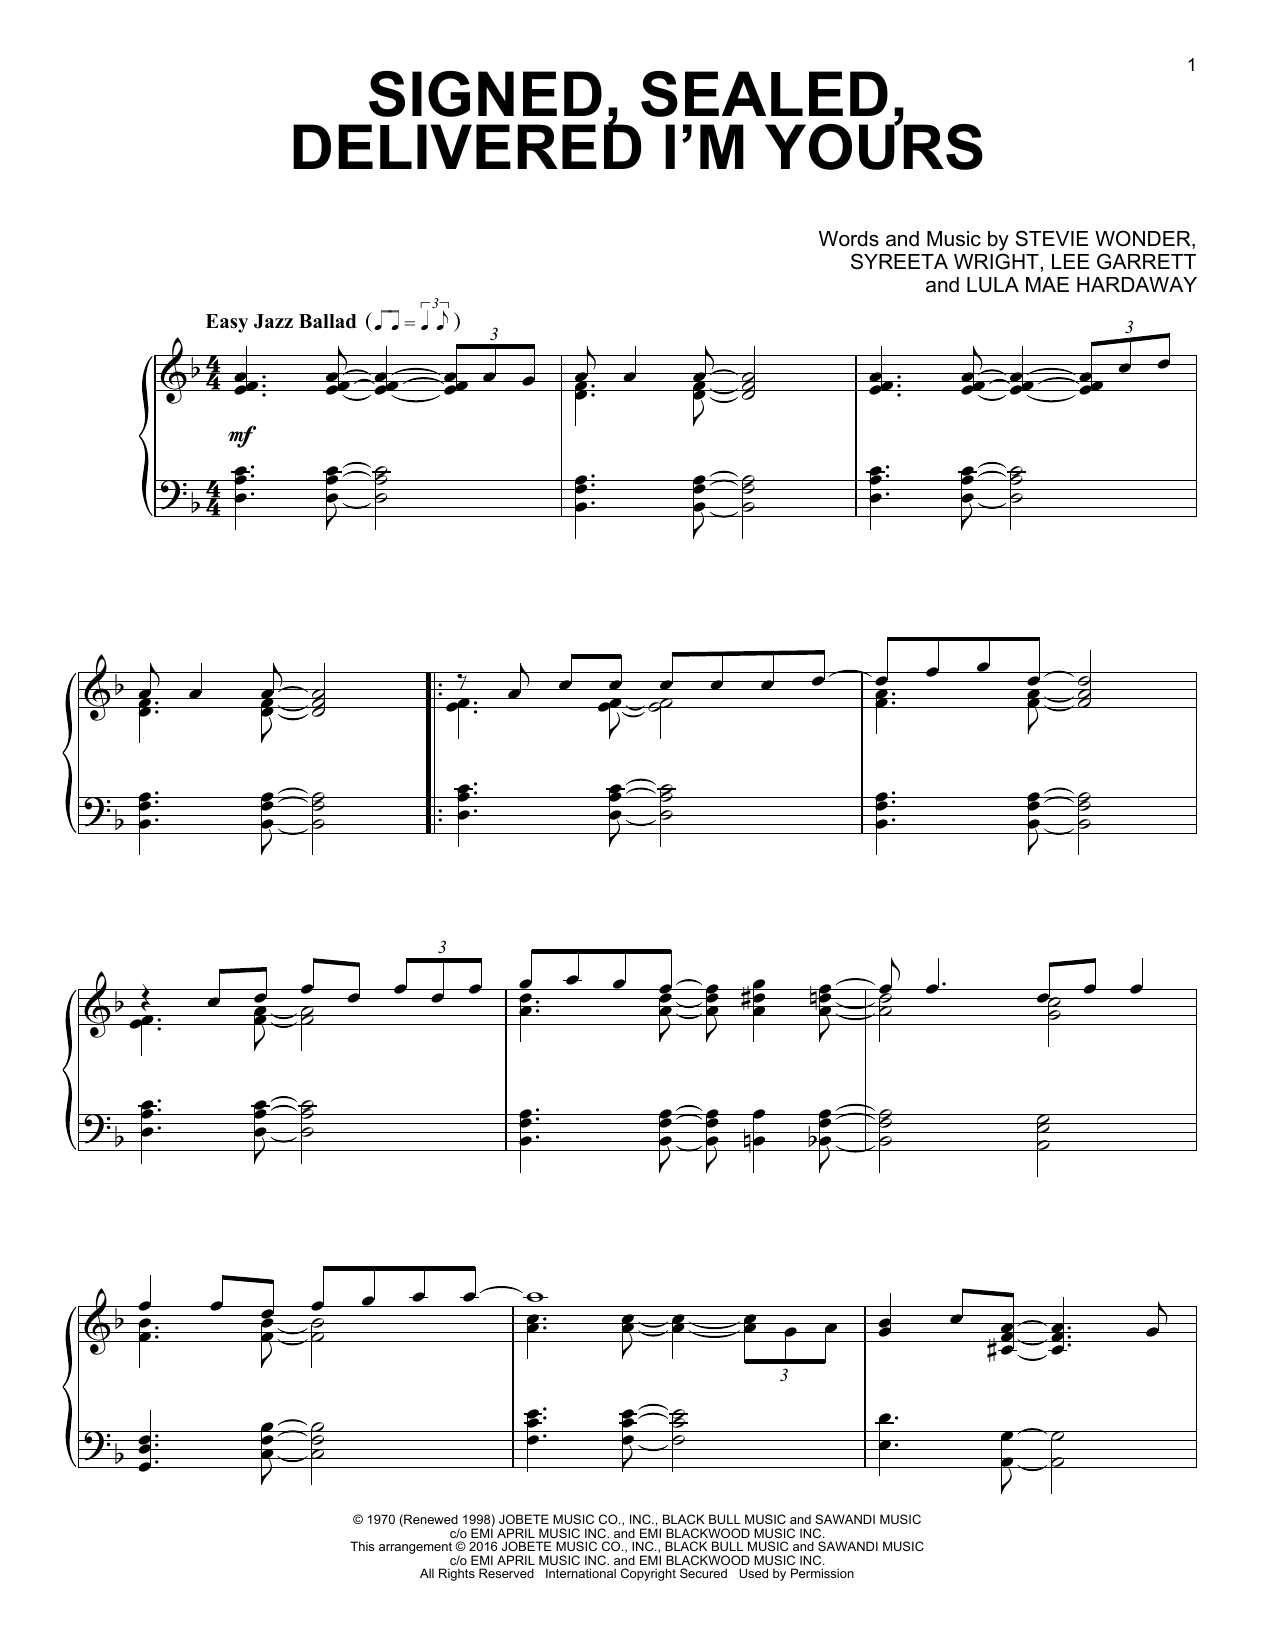 Stevie Wonder Signed, Sealed, Delivered I'm Yours [Jazz version] sheet music notes and chords. Download Printable PDF.